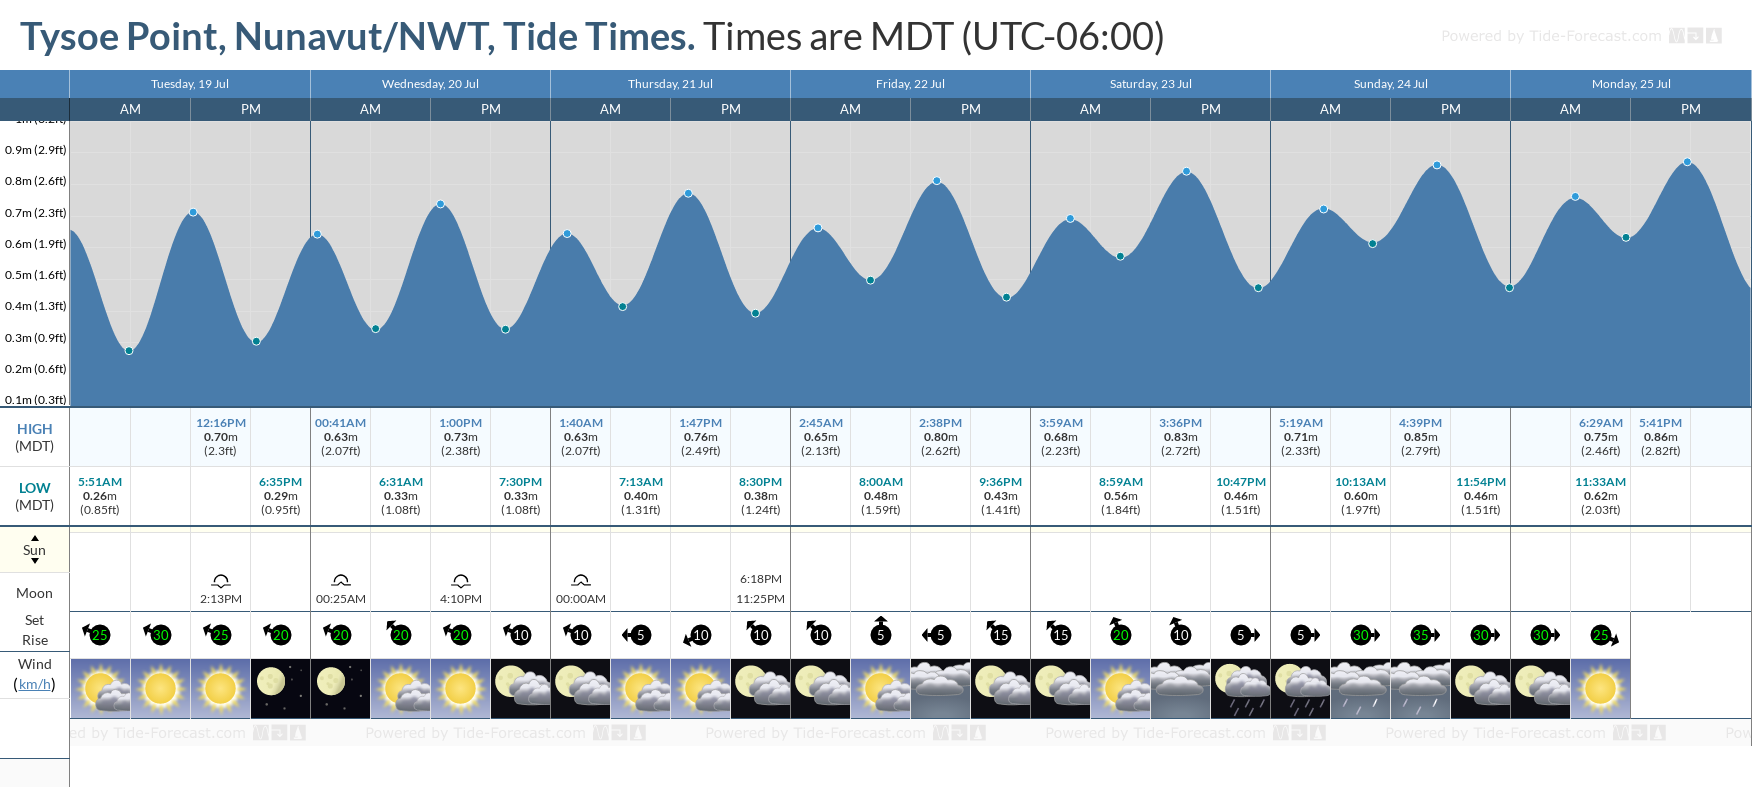 Tysoe Point, Nunavut/NWT Tide Chart including high and low tide tide times for the next 7 days